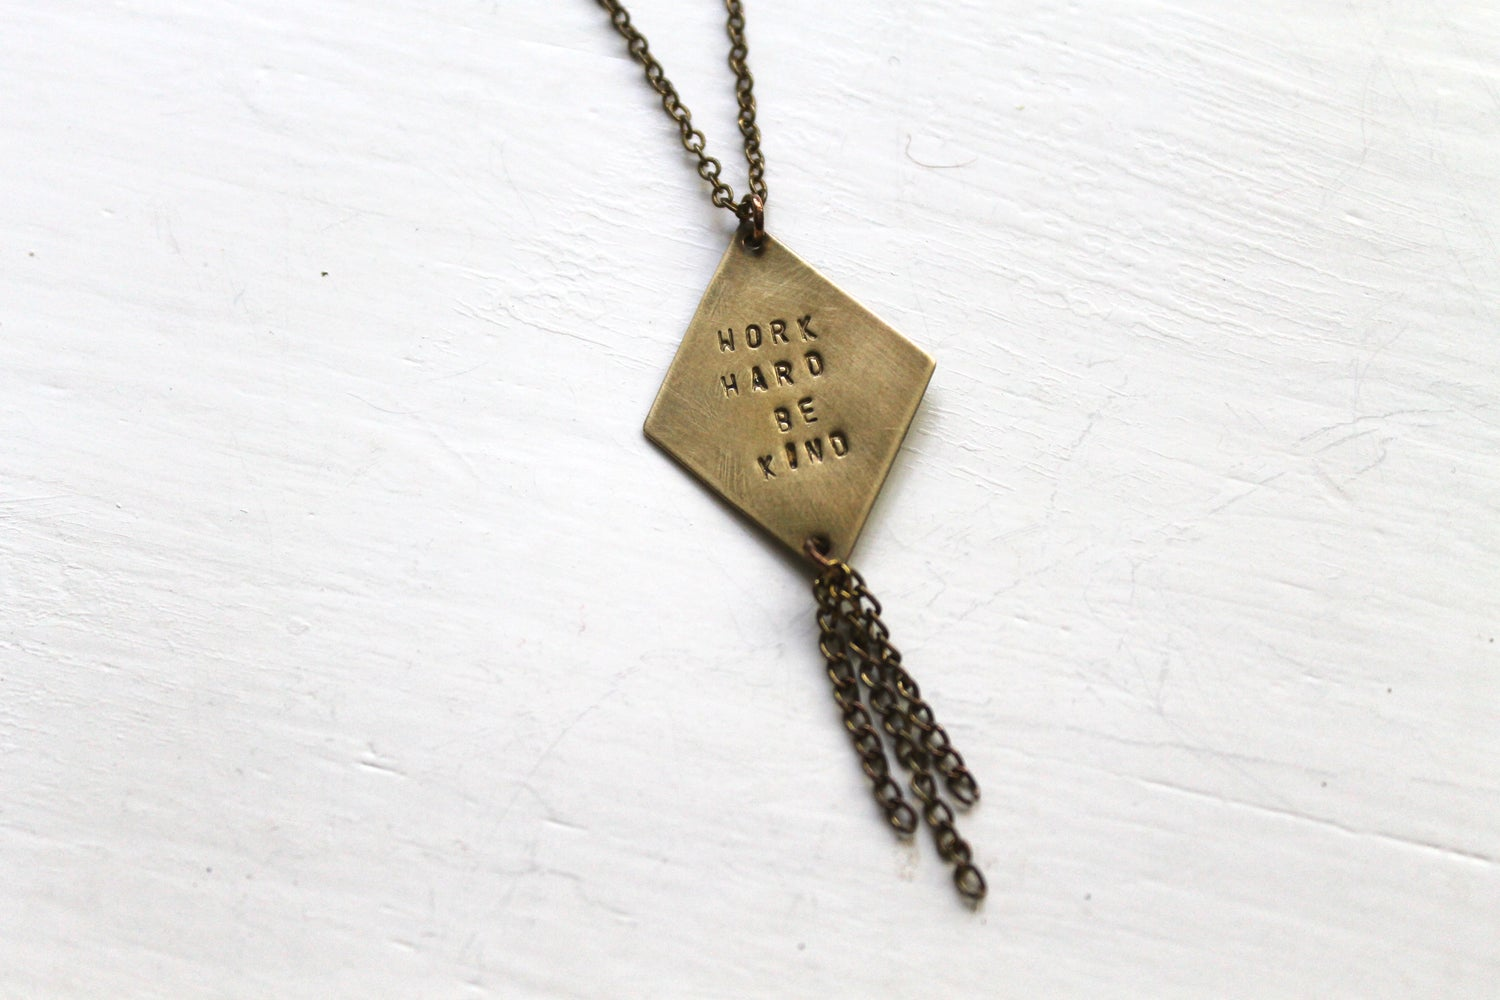 Image of Work Hard Be Kind Necklace